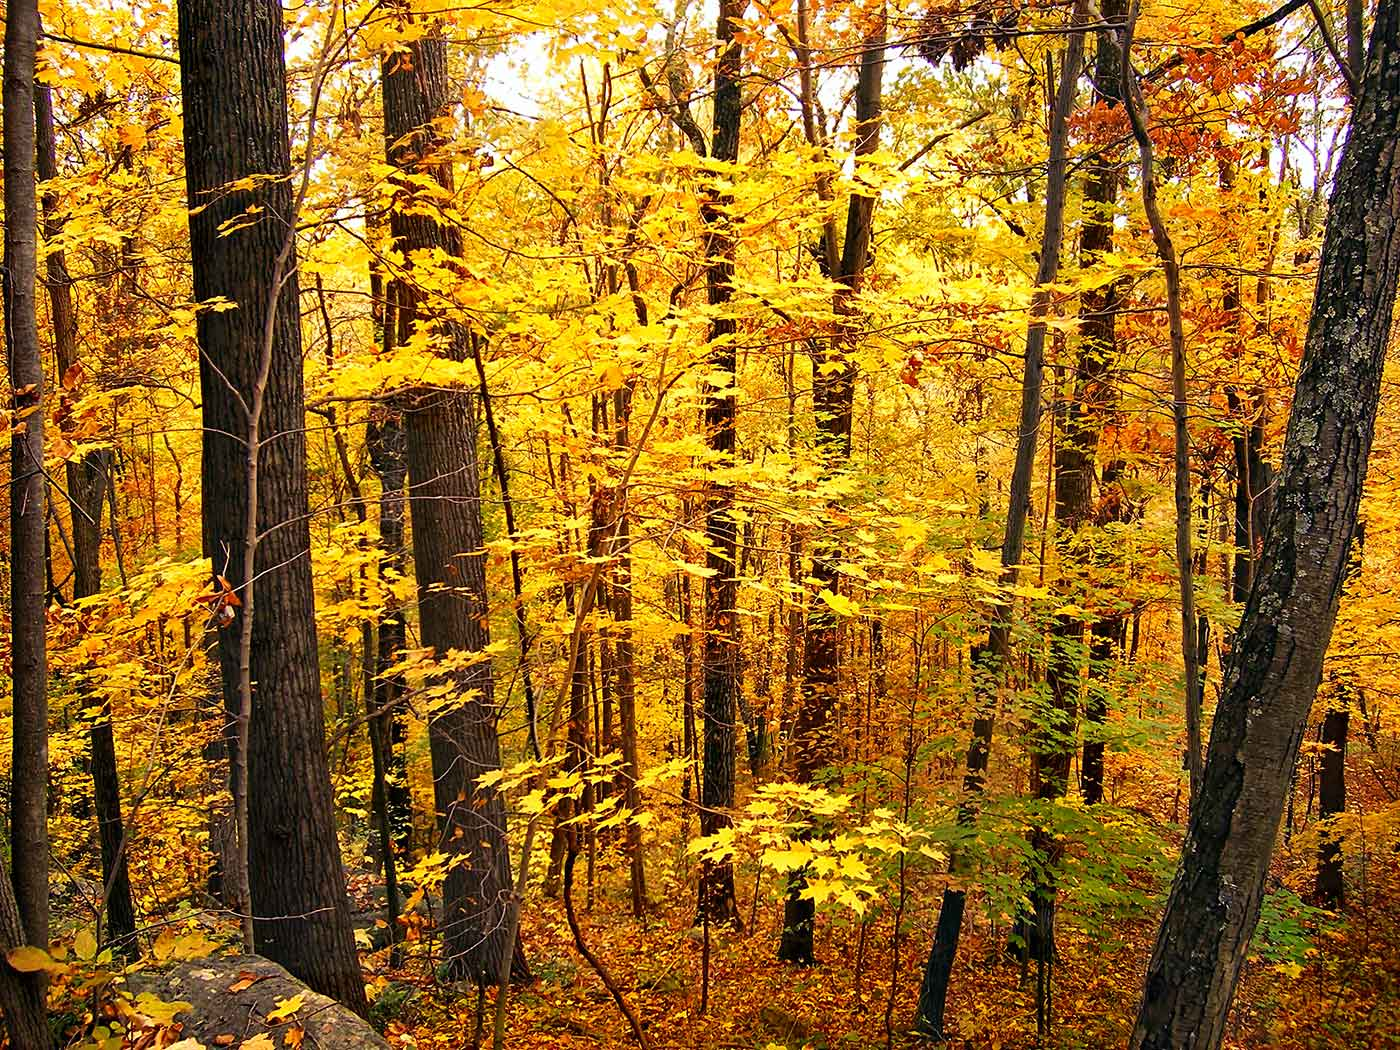 Forest with yellow foliage